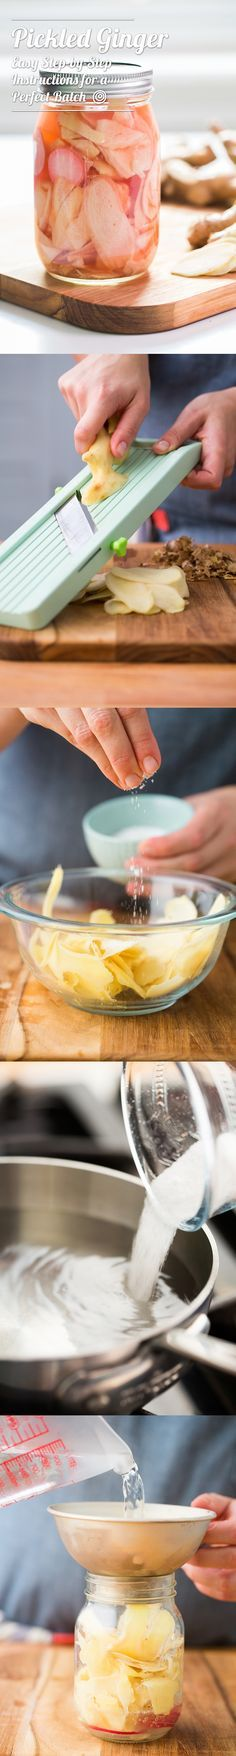 How to make EASY DIY homemade pickled ginger. This delicious recipe is a classic sushi restaurant condiment. Try canning it at home and add it to lemonade!